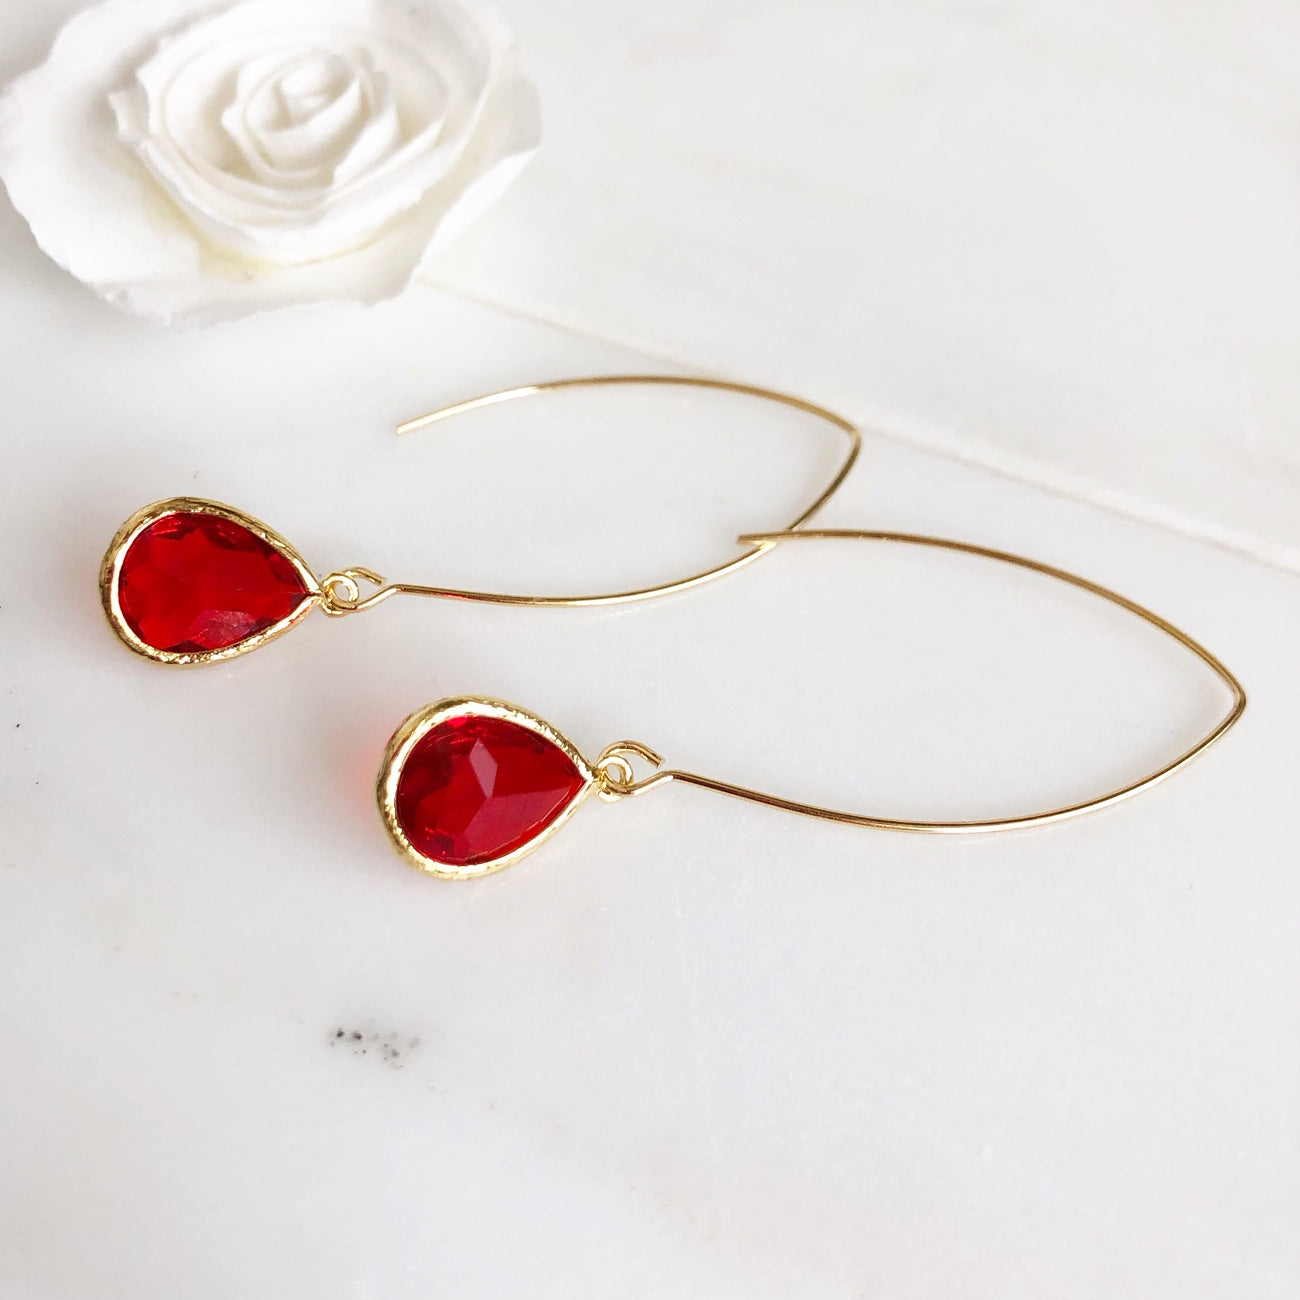 Red Drop Earrings in Gold. Red Earrings. Holiday Jewelry. Christmas Earrings. Gift.